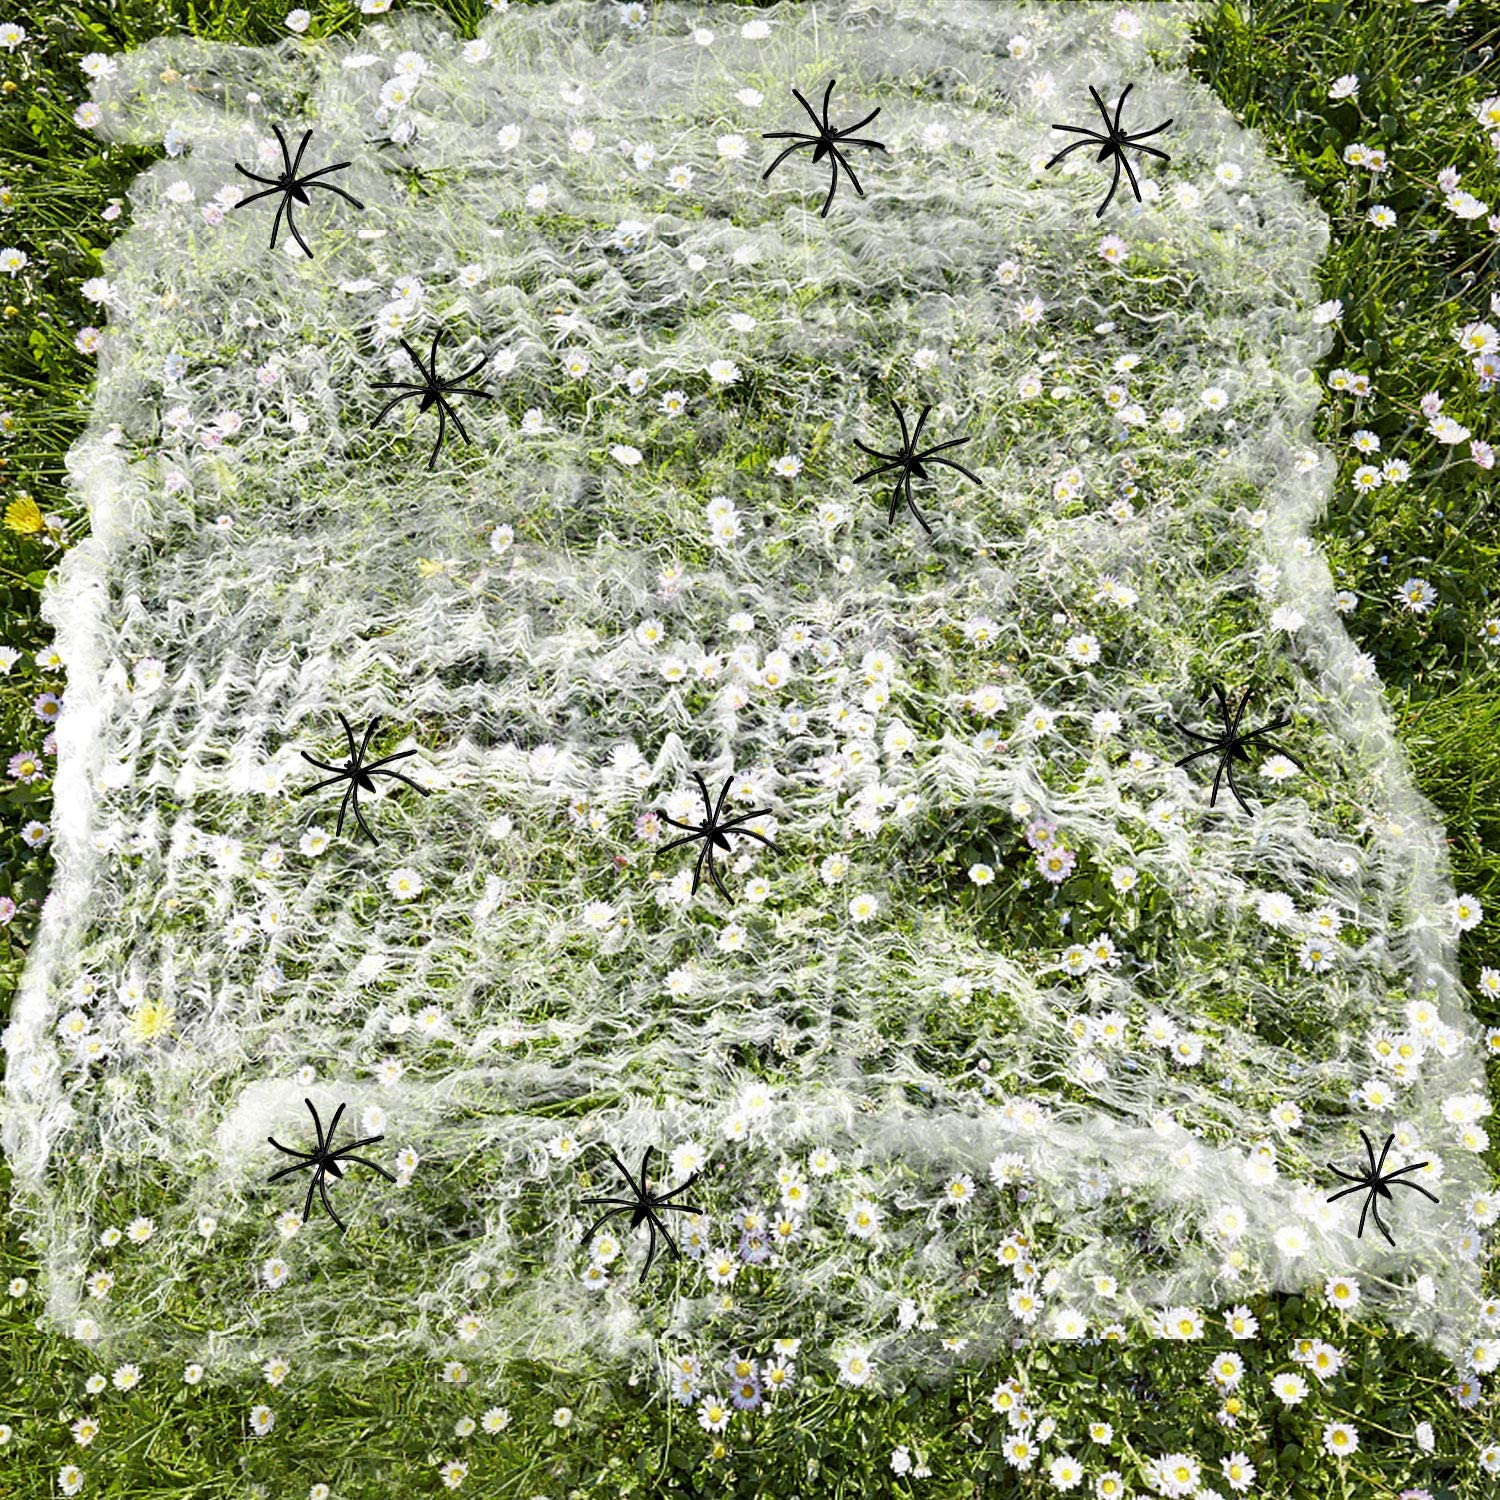 Halloween Fake Stretch Spider Webs for Indoor and Outdoor Decorations /& 50 Fake Spiders